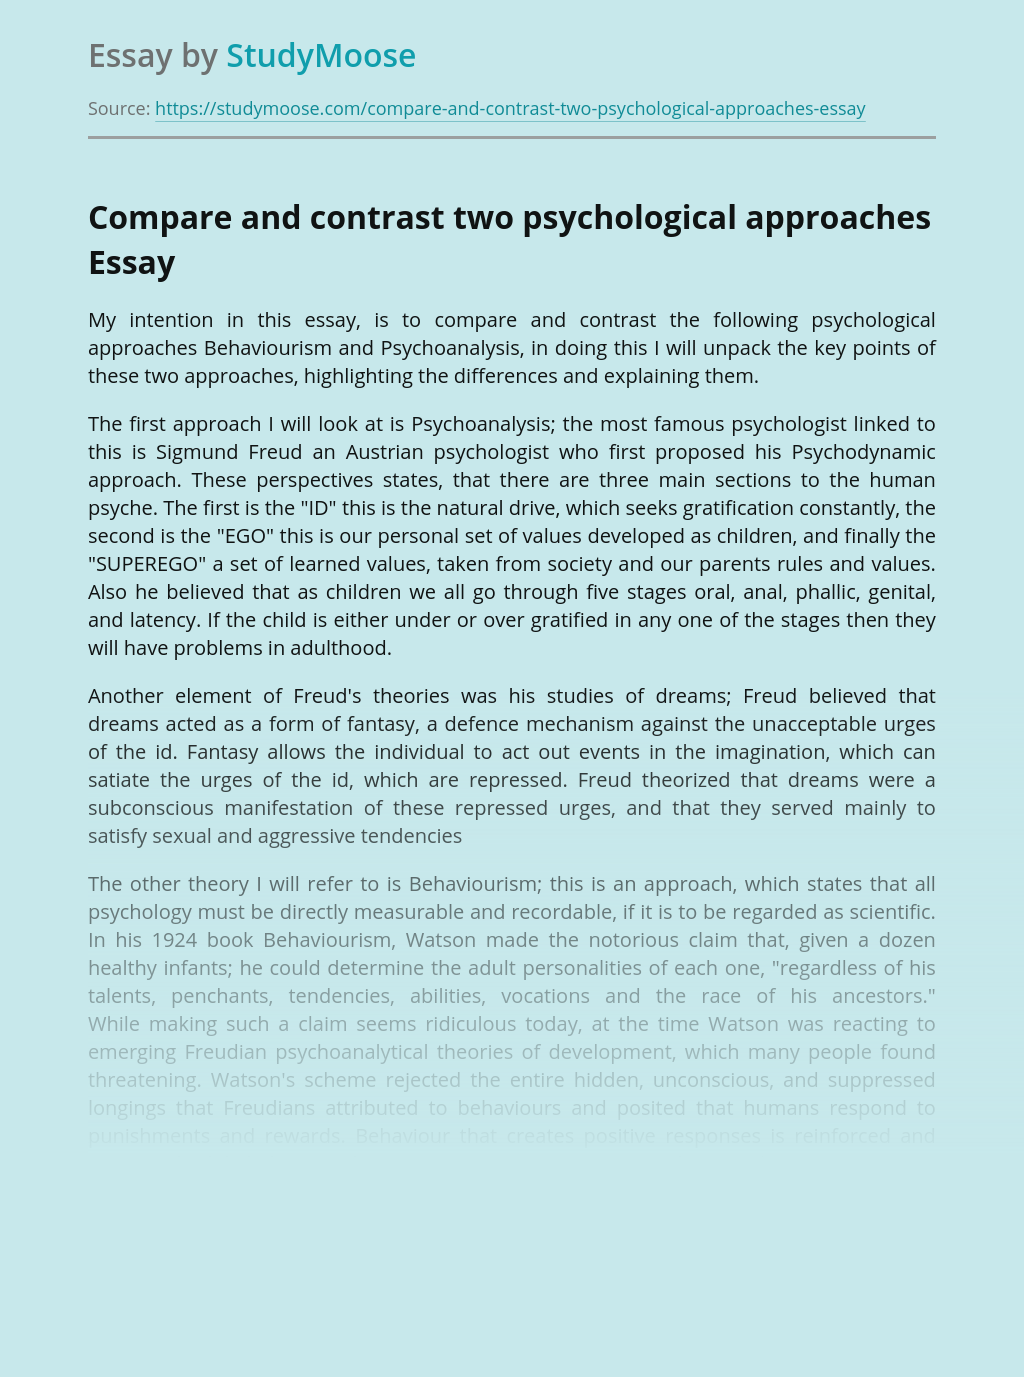 Compare and contrast two psychological approaches